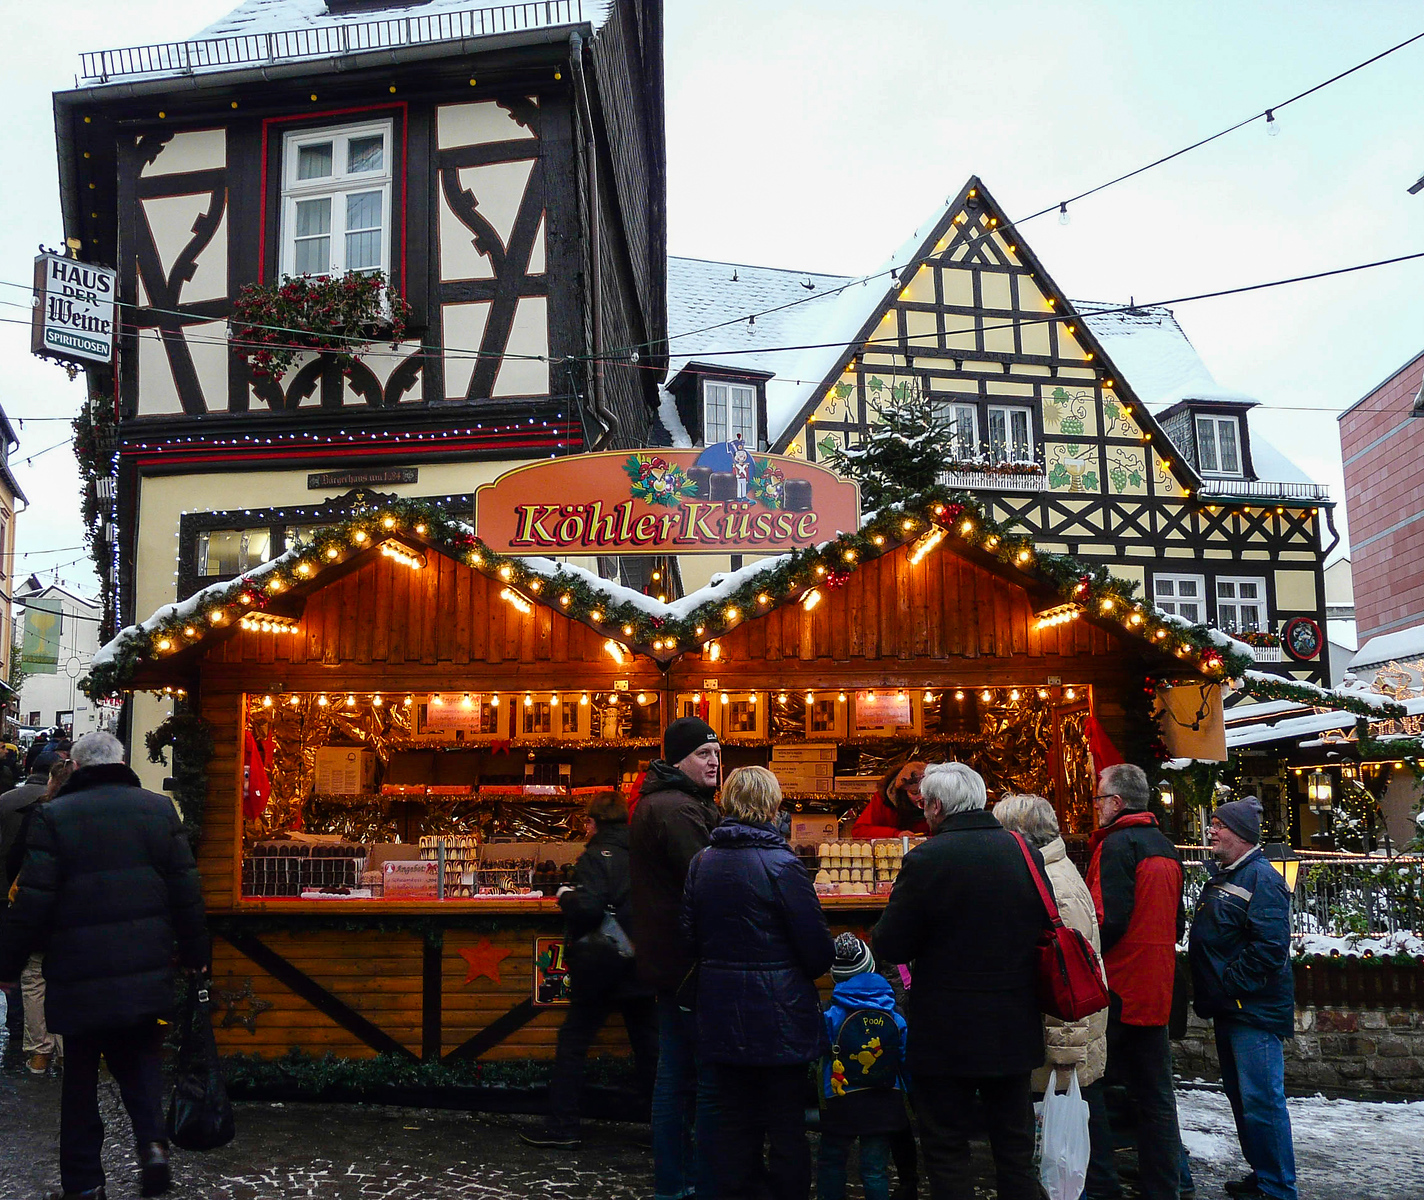 Rudesheim oozes charm any day of the year but is especially festive during the Christmas markets.